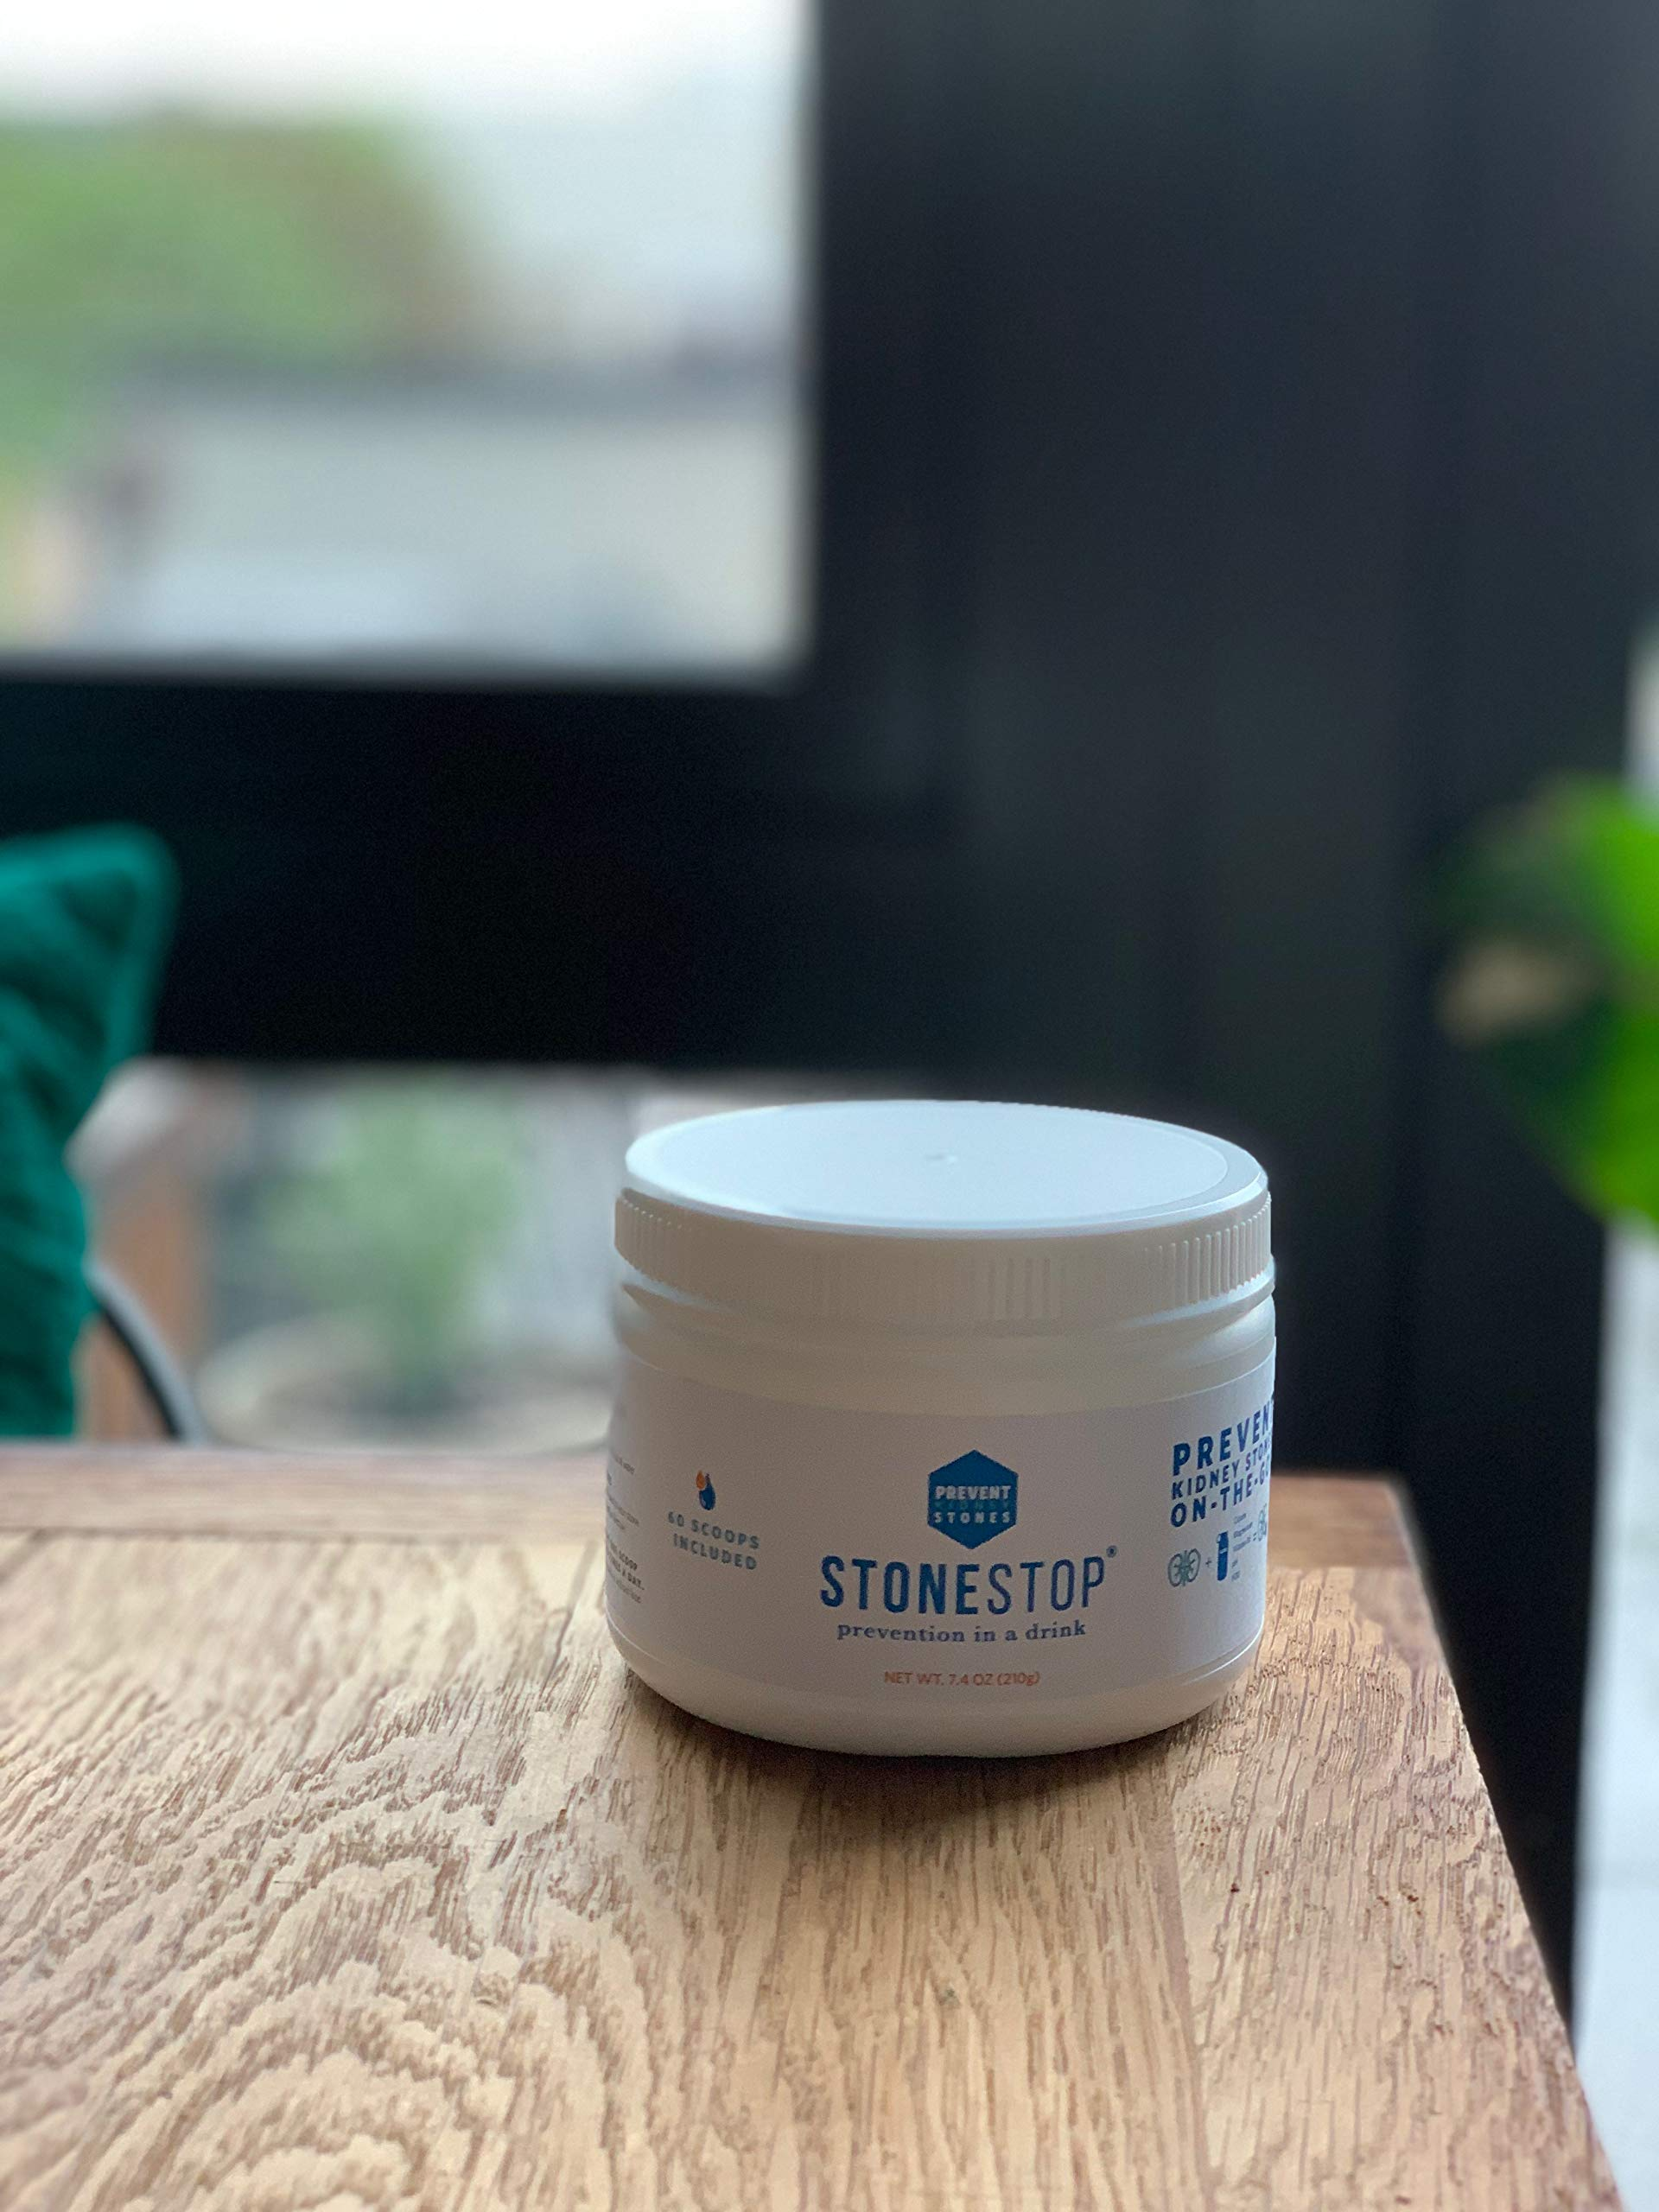 StoneStop - NO More Pain! - Kidney Stone Treatment and Prevention Drink Mix Powder - Exclusive Formula Developed by Urologists - 60 Scoops 7.4 OZ (210g) by StoneStop LLC